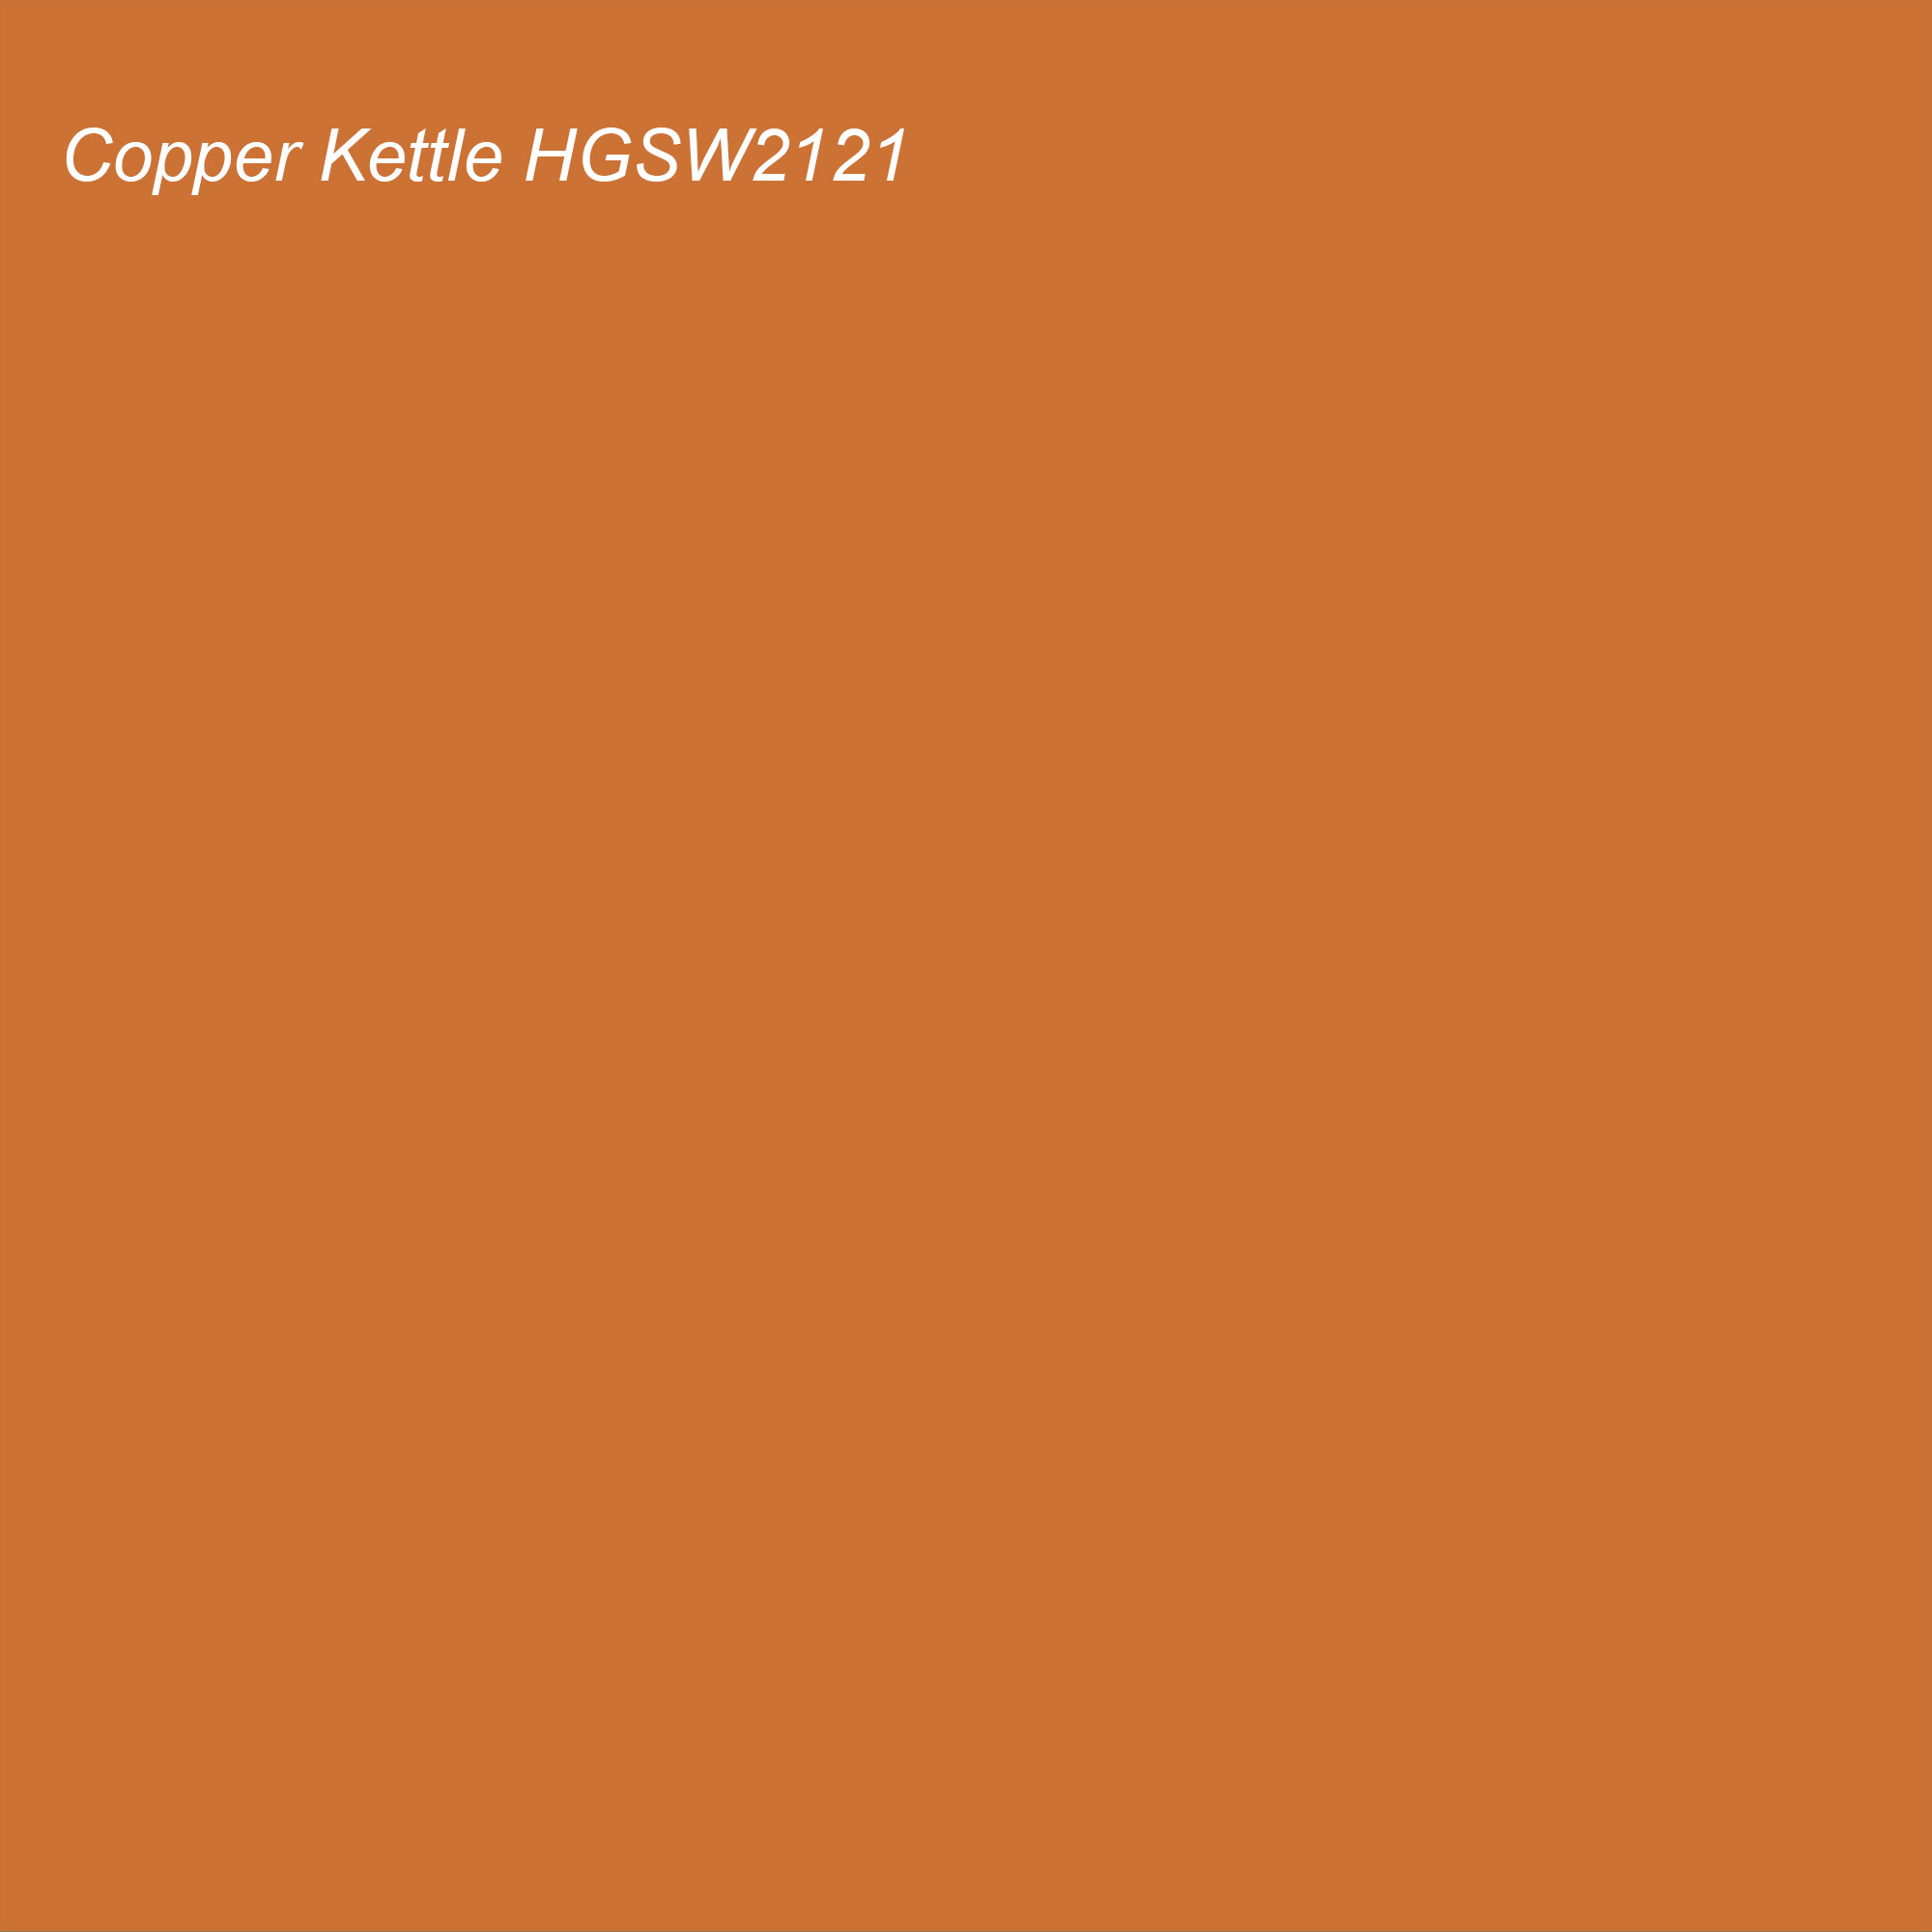 HGTV 2021 Color of the Year Suggested Accent Shade Copper Kettle HGSW2121